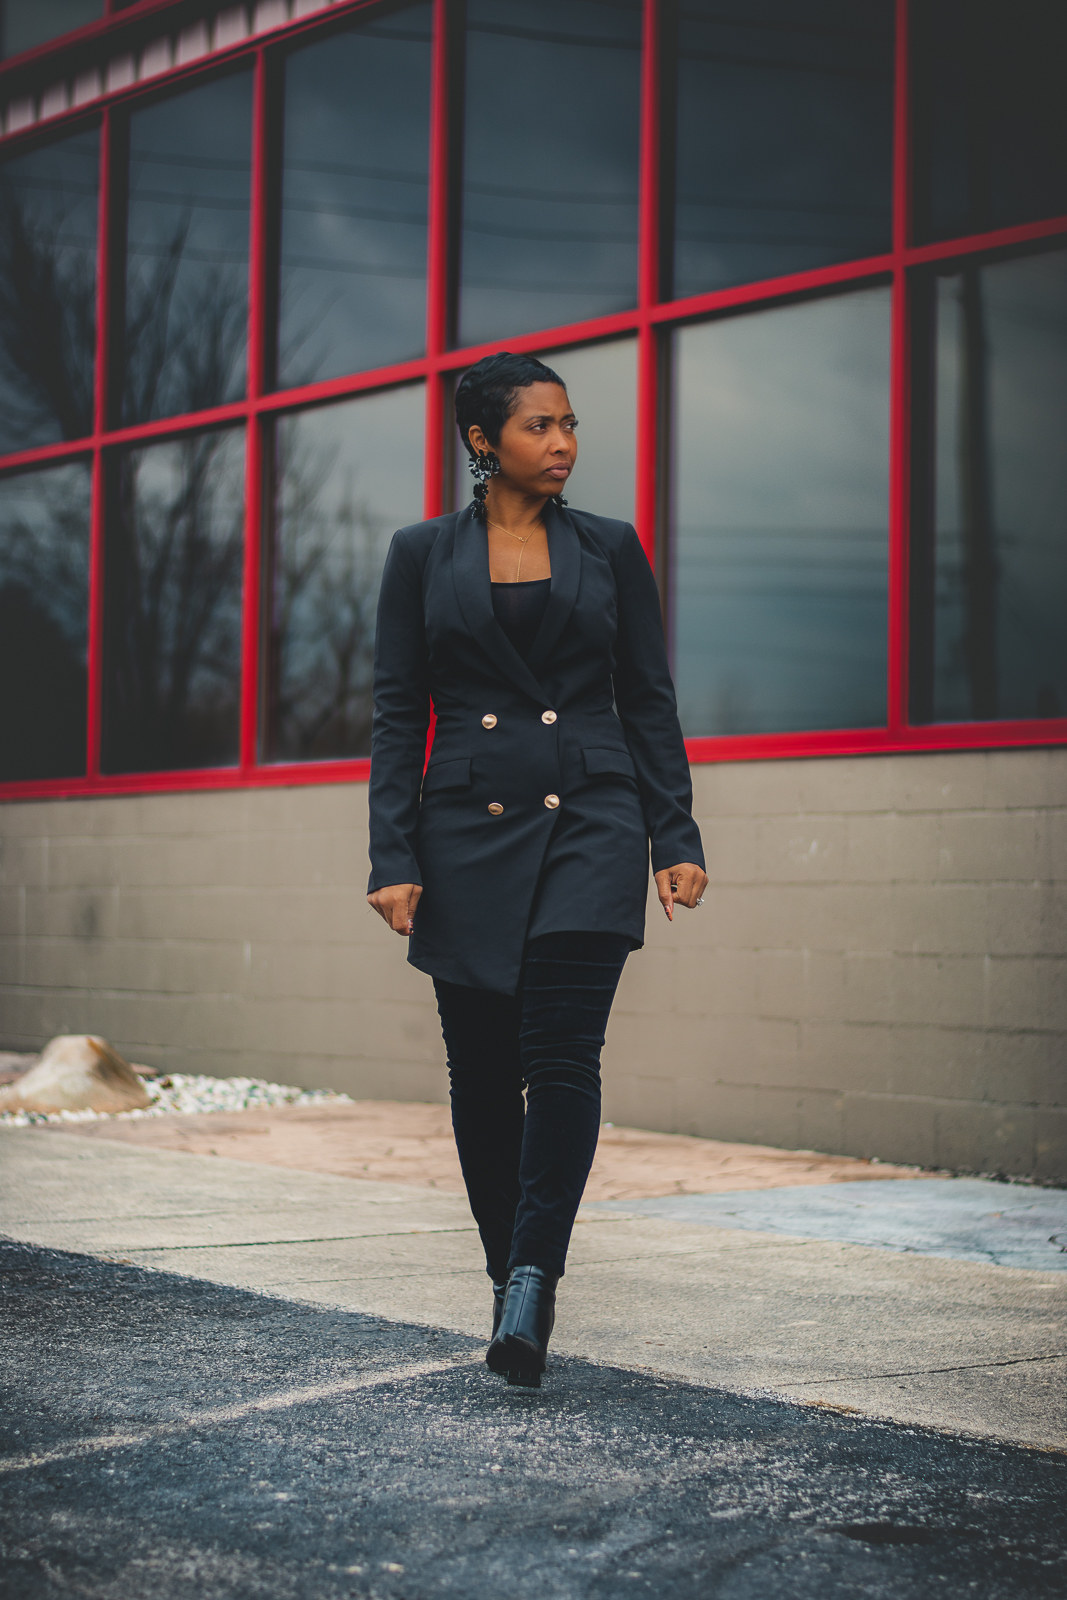 sweenee style, How to wear all black, black holiday looks, black blazer, jeans from gap, indianapolis style blog, indiana fashion blog, black girl who blogs, natural hair, pixie cut